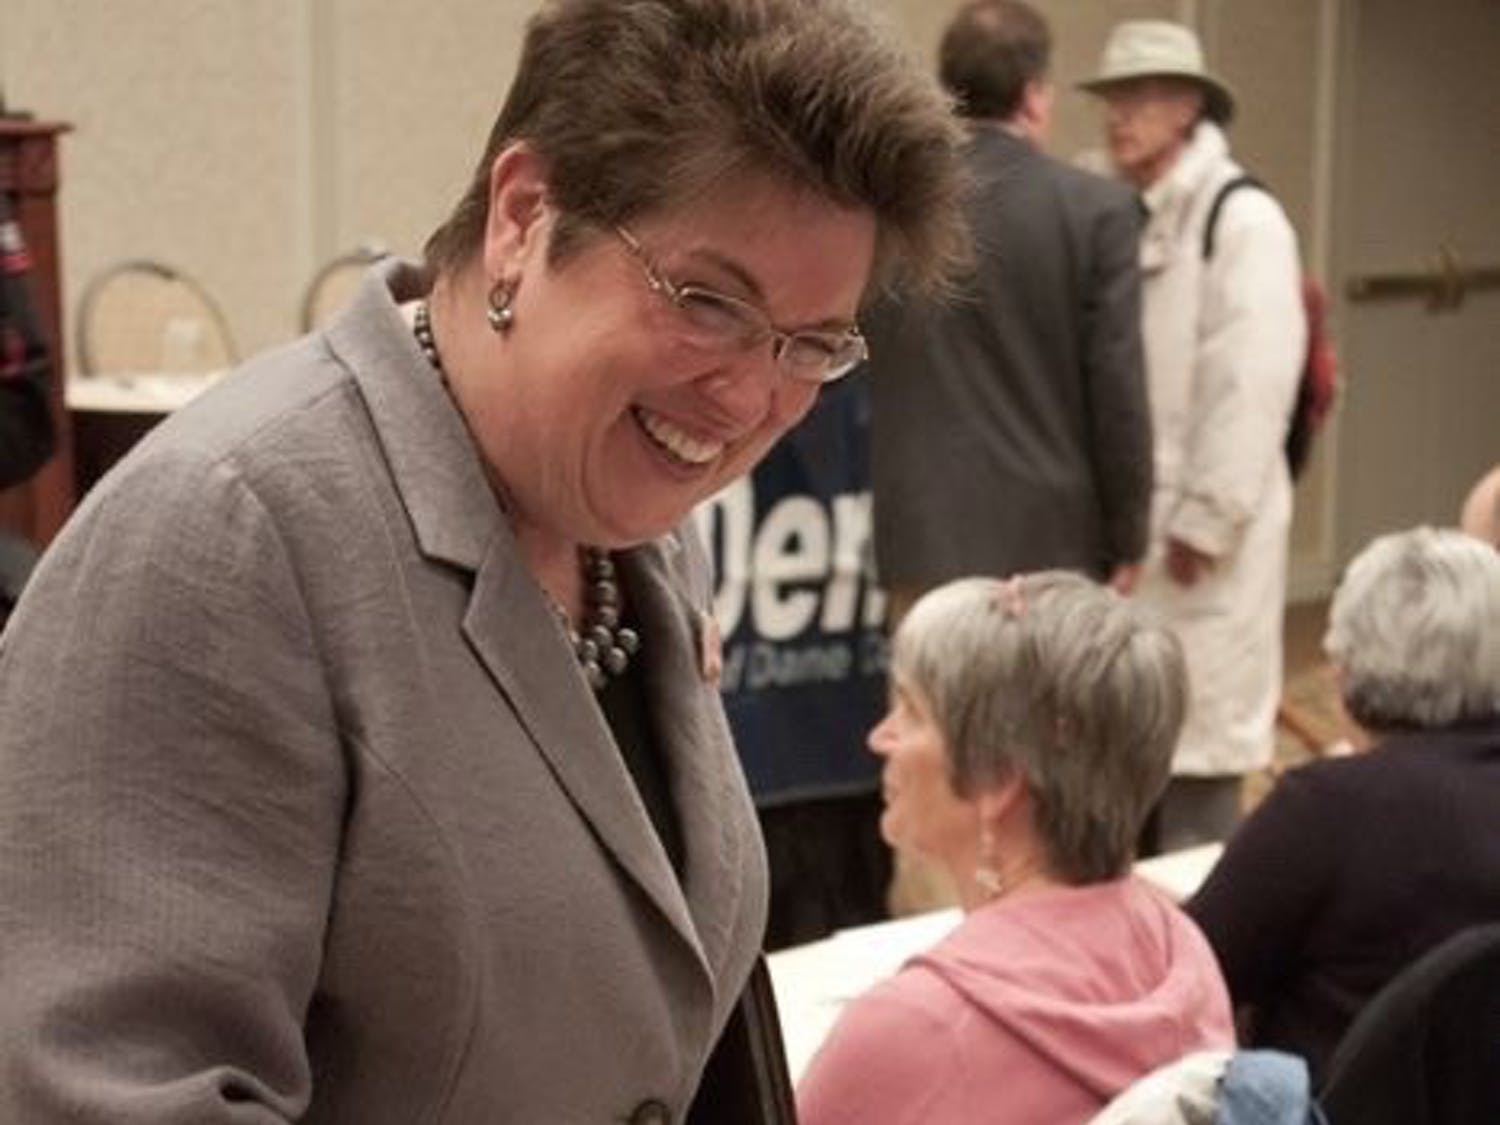 State Sen. Kathleen Vinehout, D-Alma, announced Monday she will enter the 2018 race for governor.